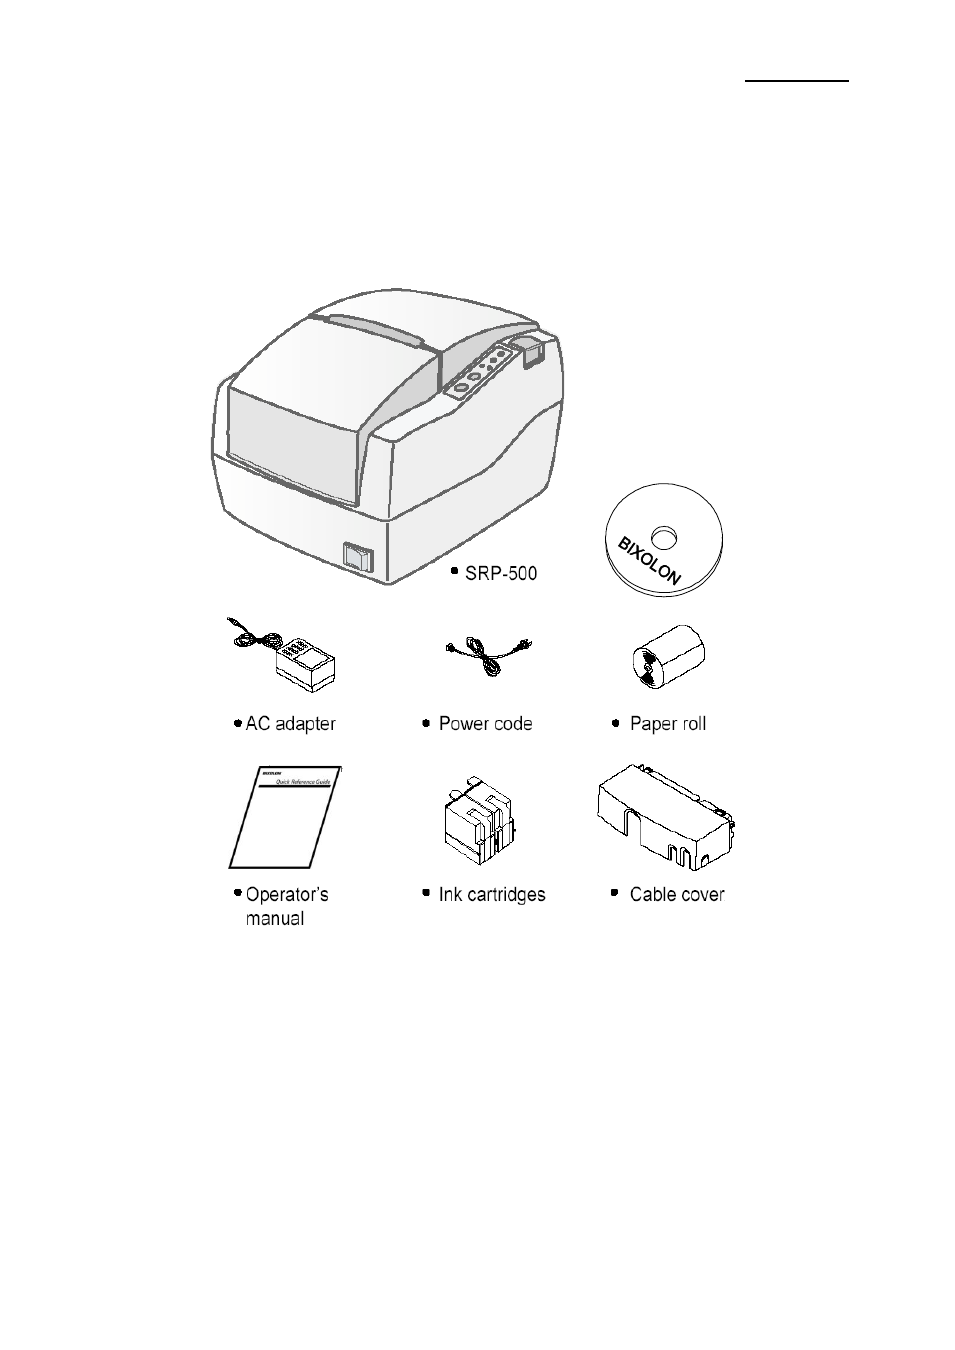 1 unpacking, Setting up the printer, Srp-500 1. setting up